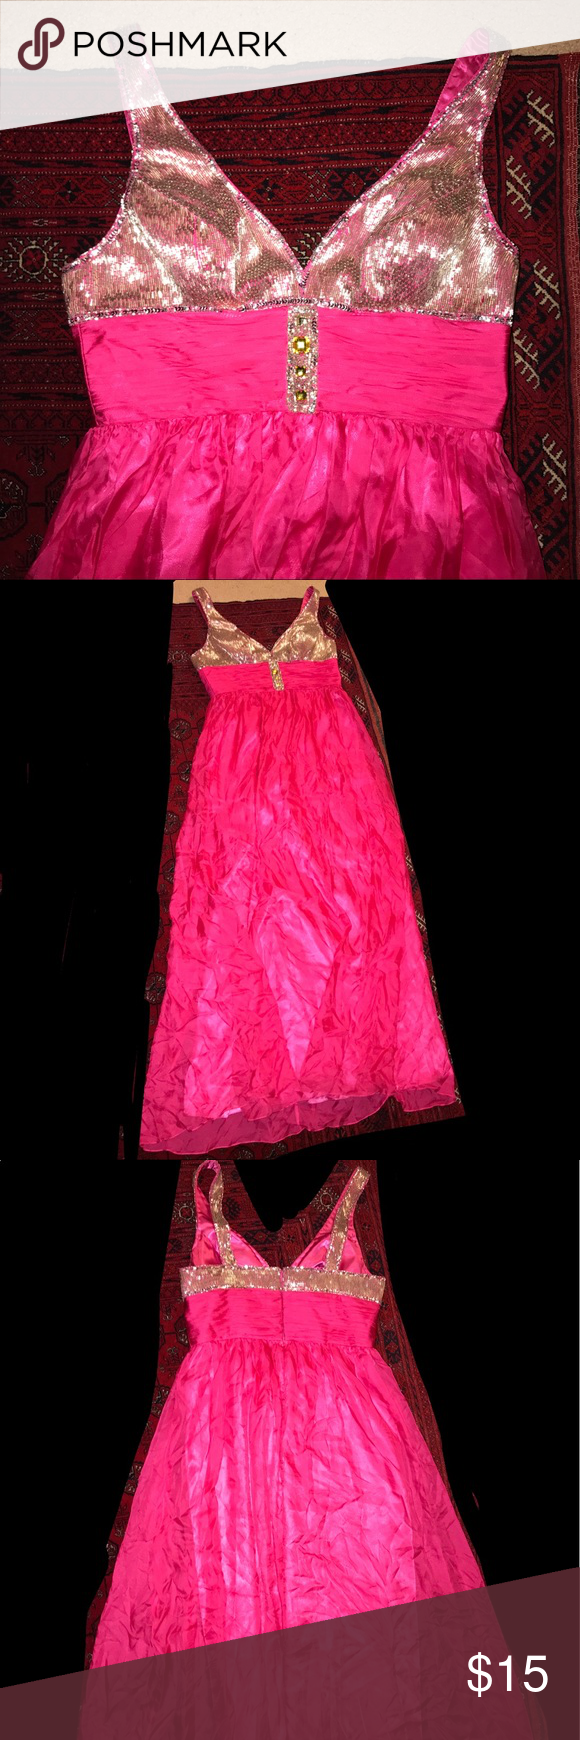 Hot pink sequin dress pink sequin dress pink sequin and hot pink